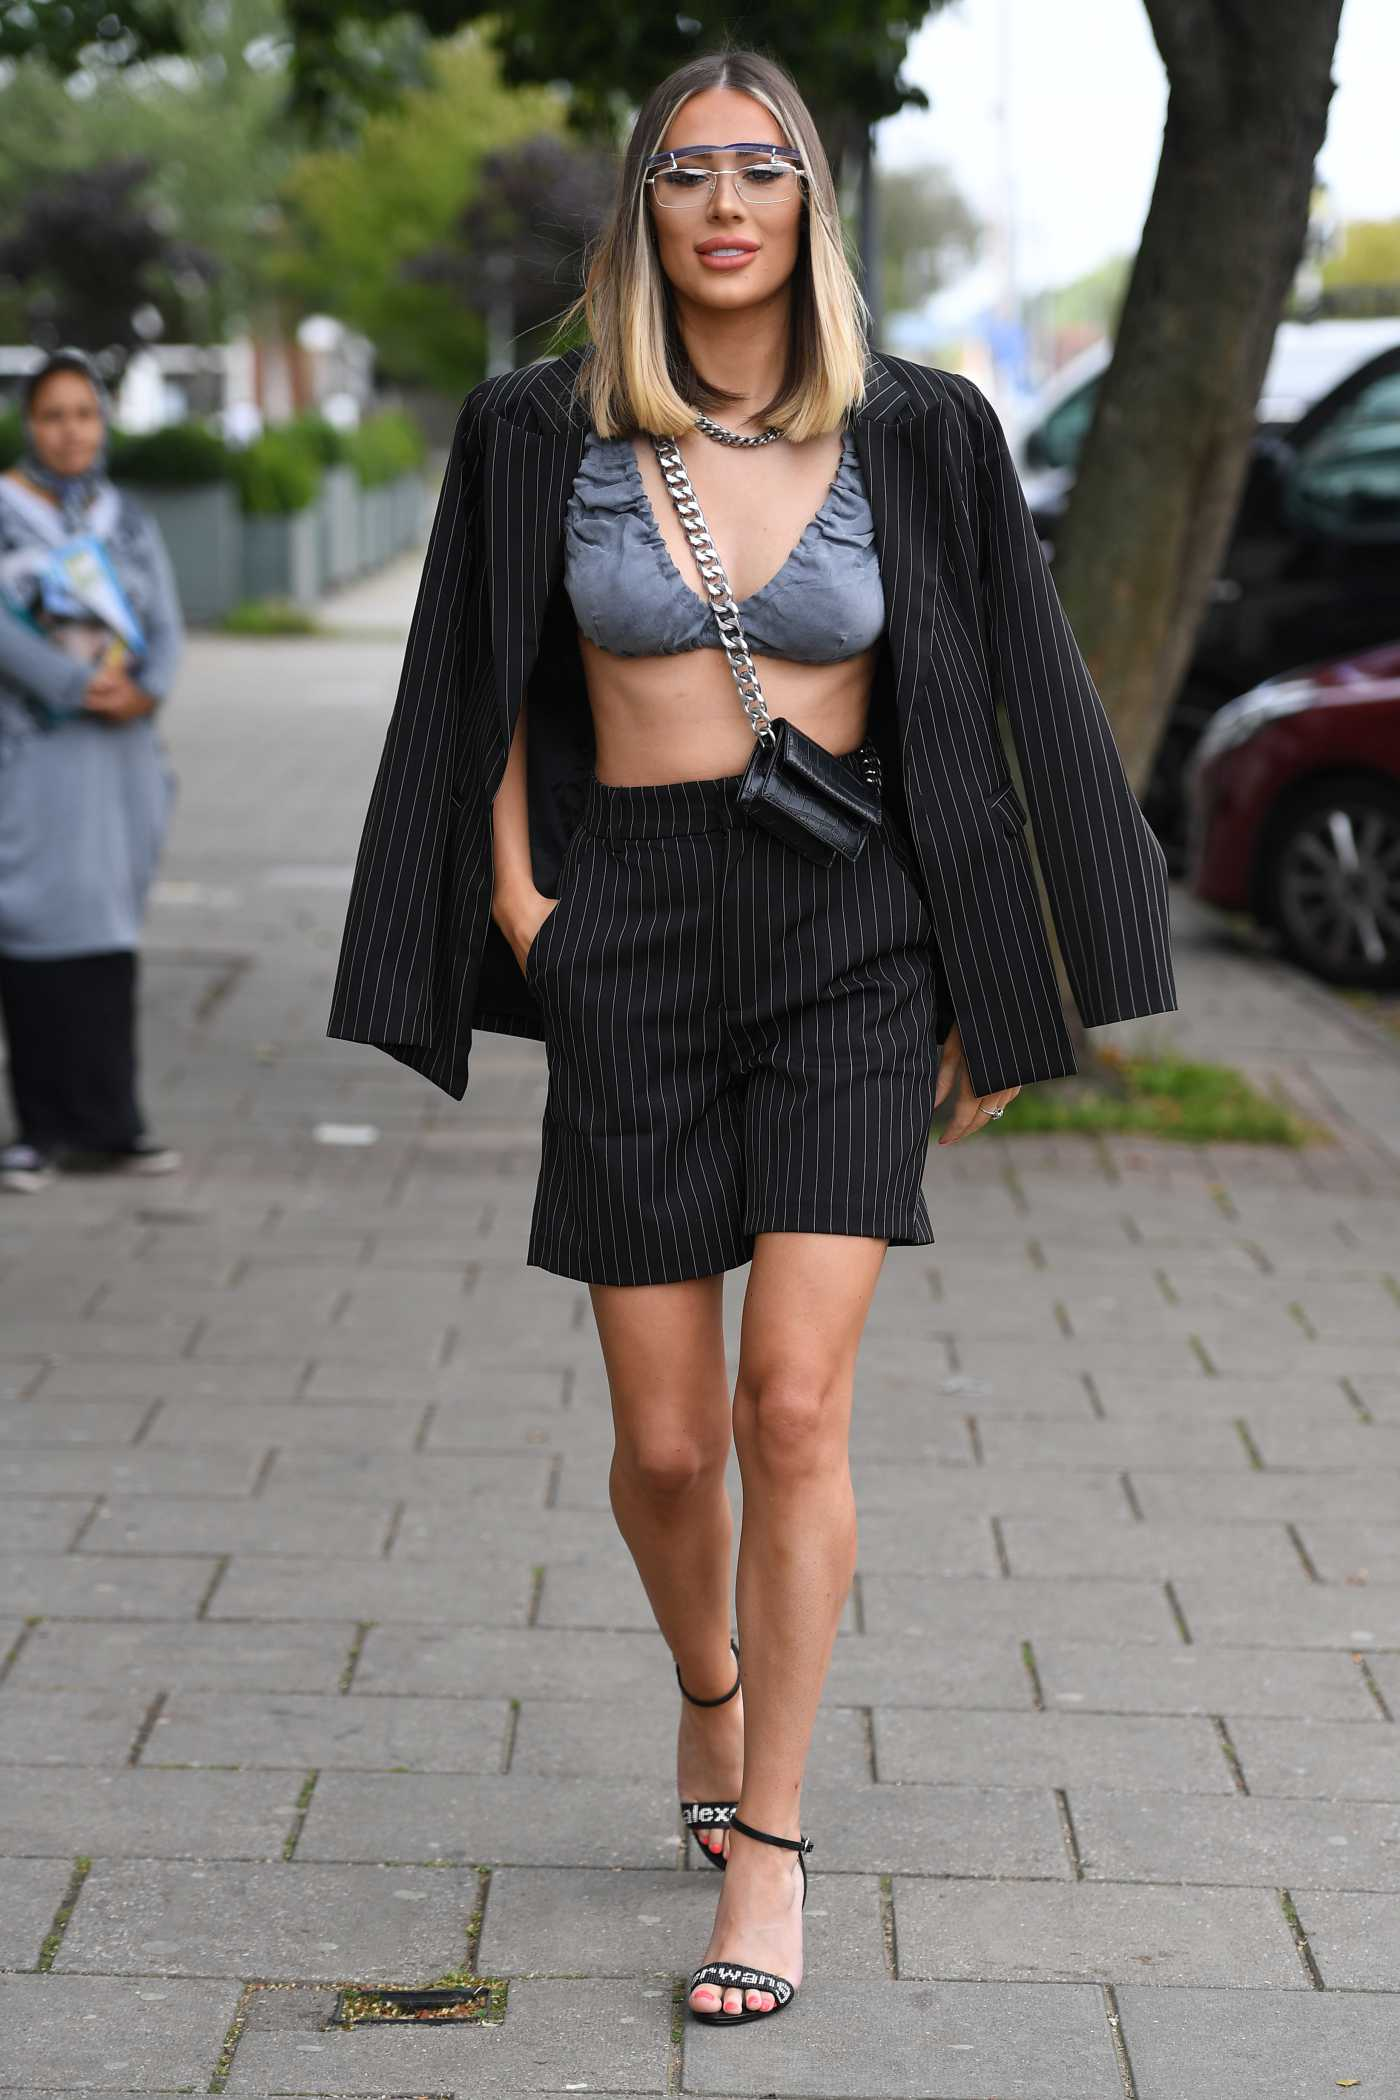 Demi Sims in a Grey Bra on the Set of The Only Way is Essex TV Show in Essex 08/21/2020